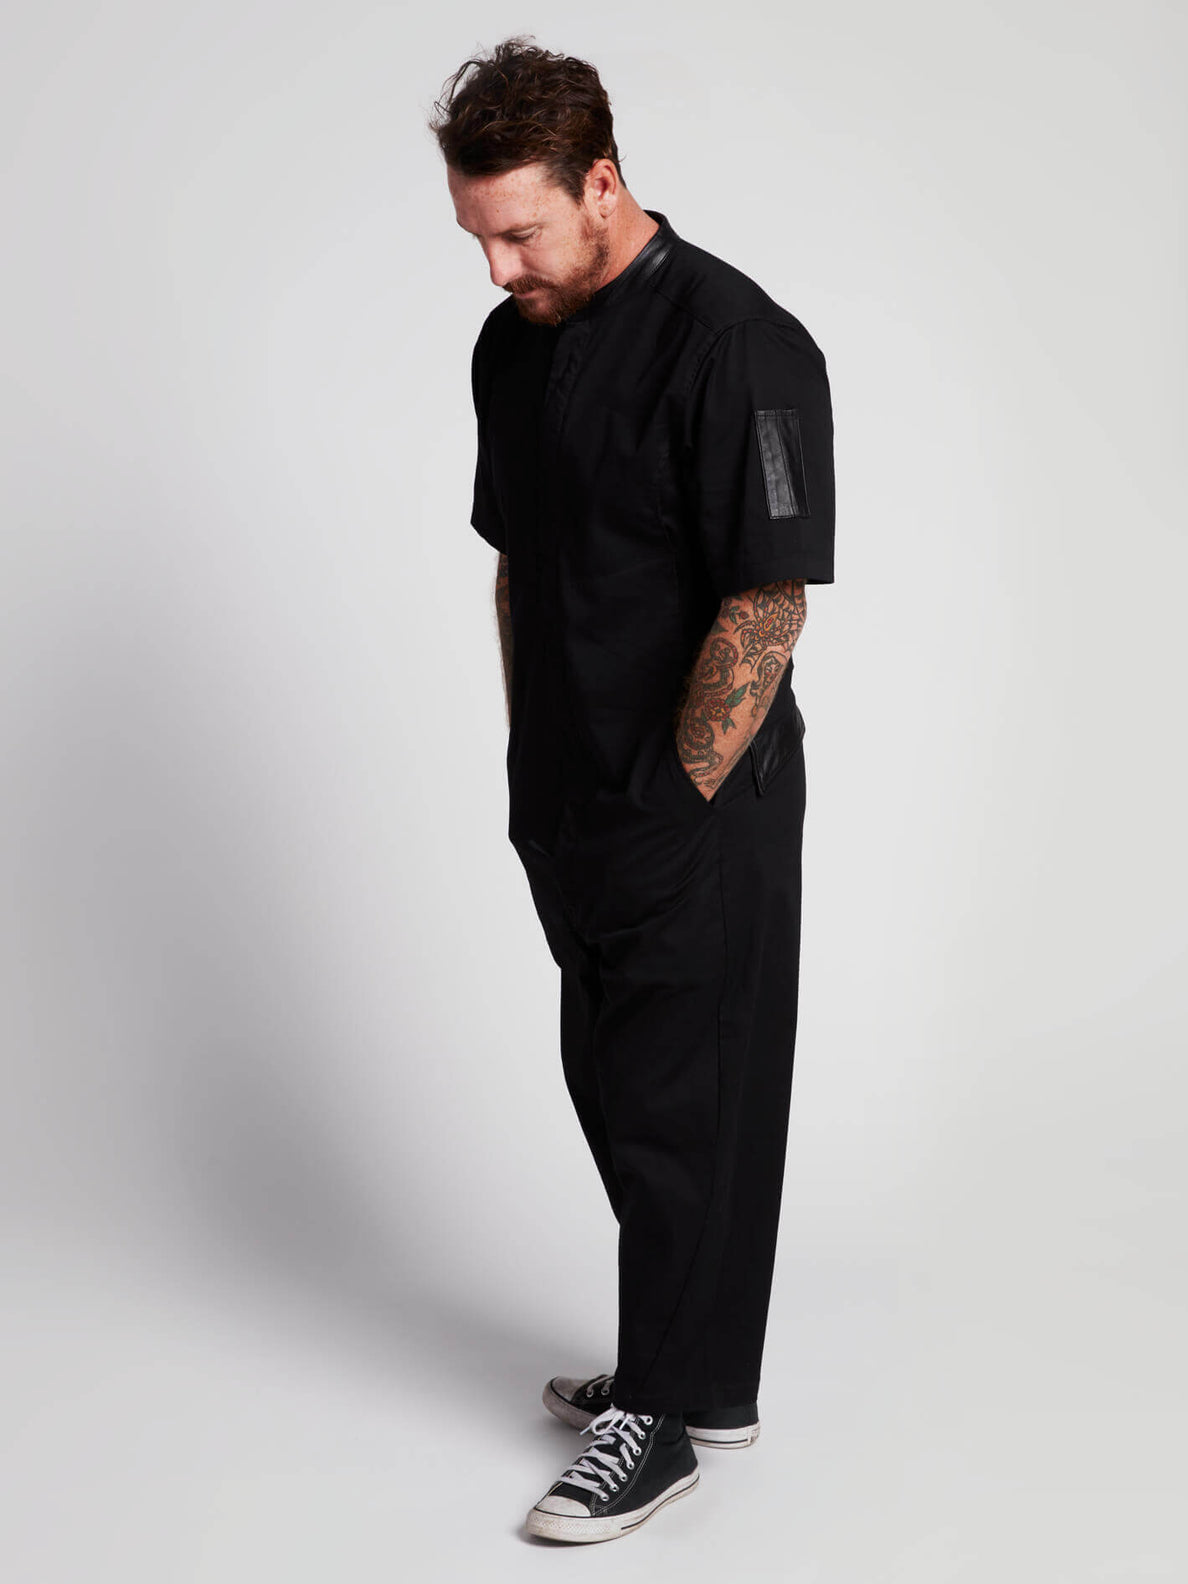 Rogan Gregory X Volcom Coverall In Black, Second Alternate View